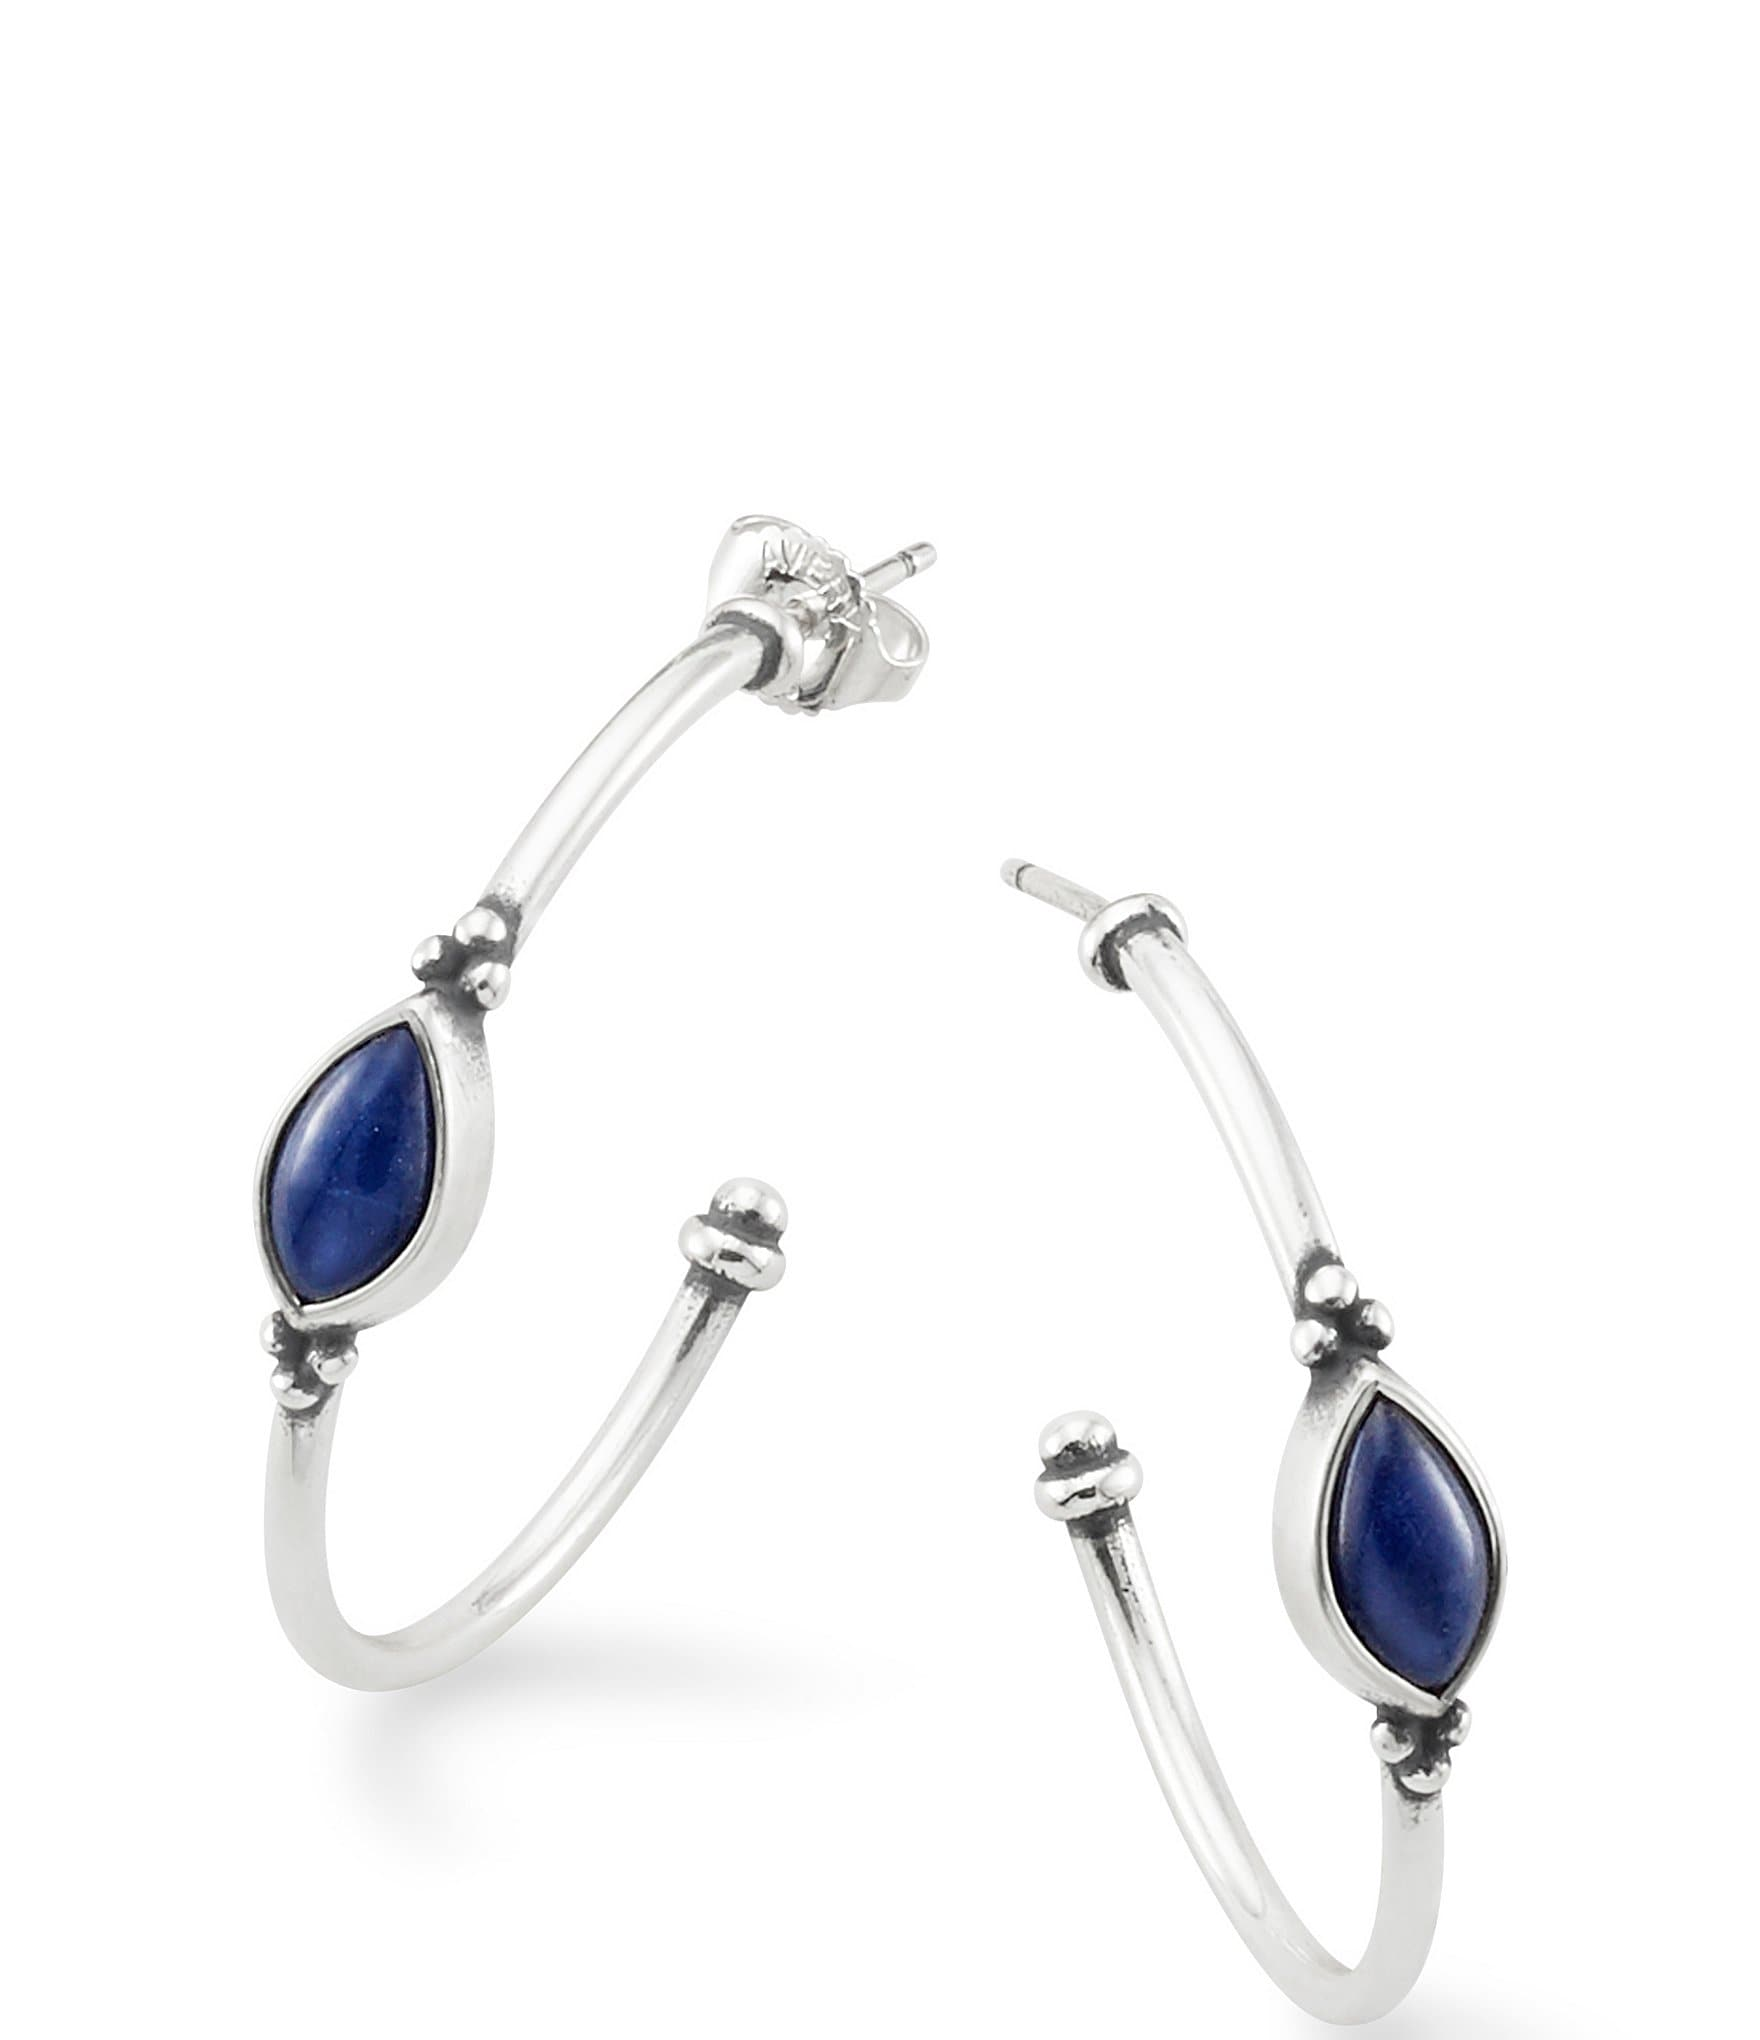 c36f7741f10d0 James Avery Adela Hoop Ear Posts with Sodalite